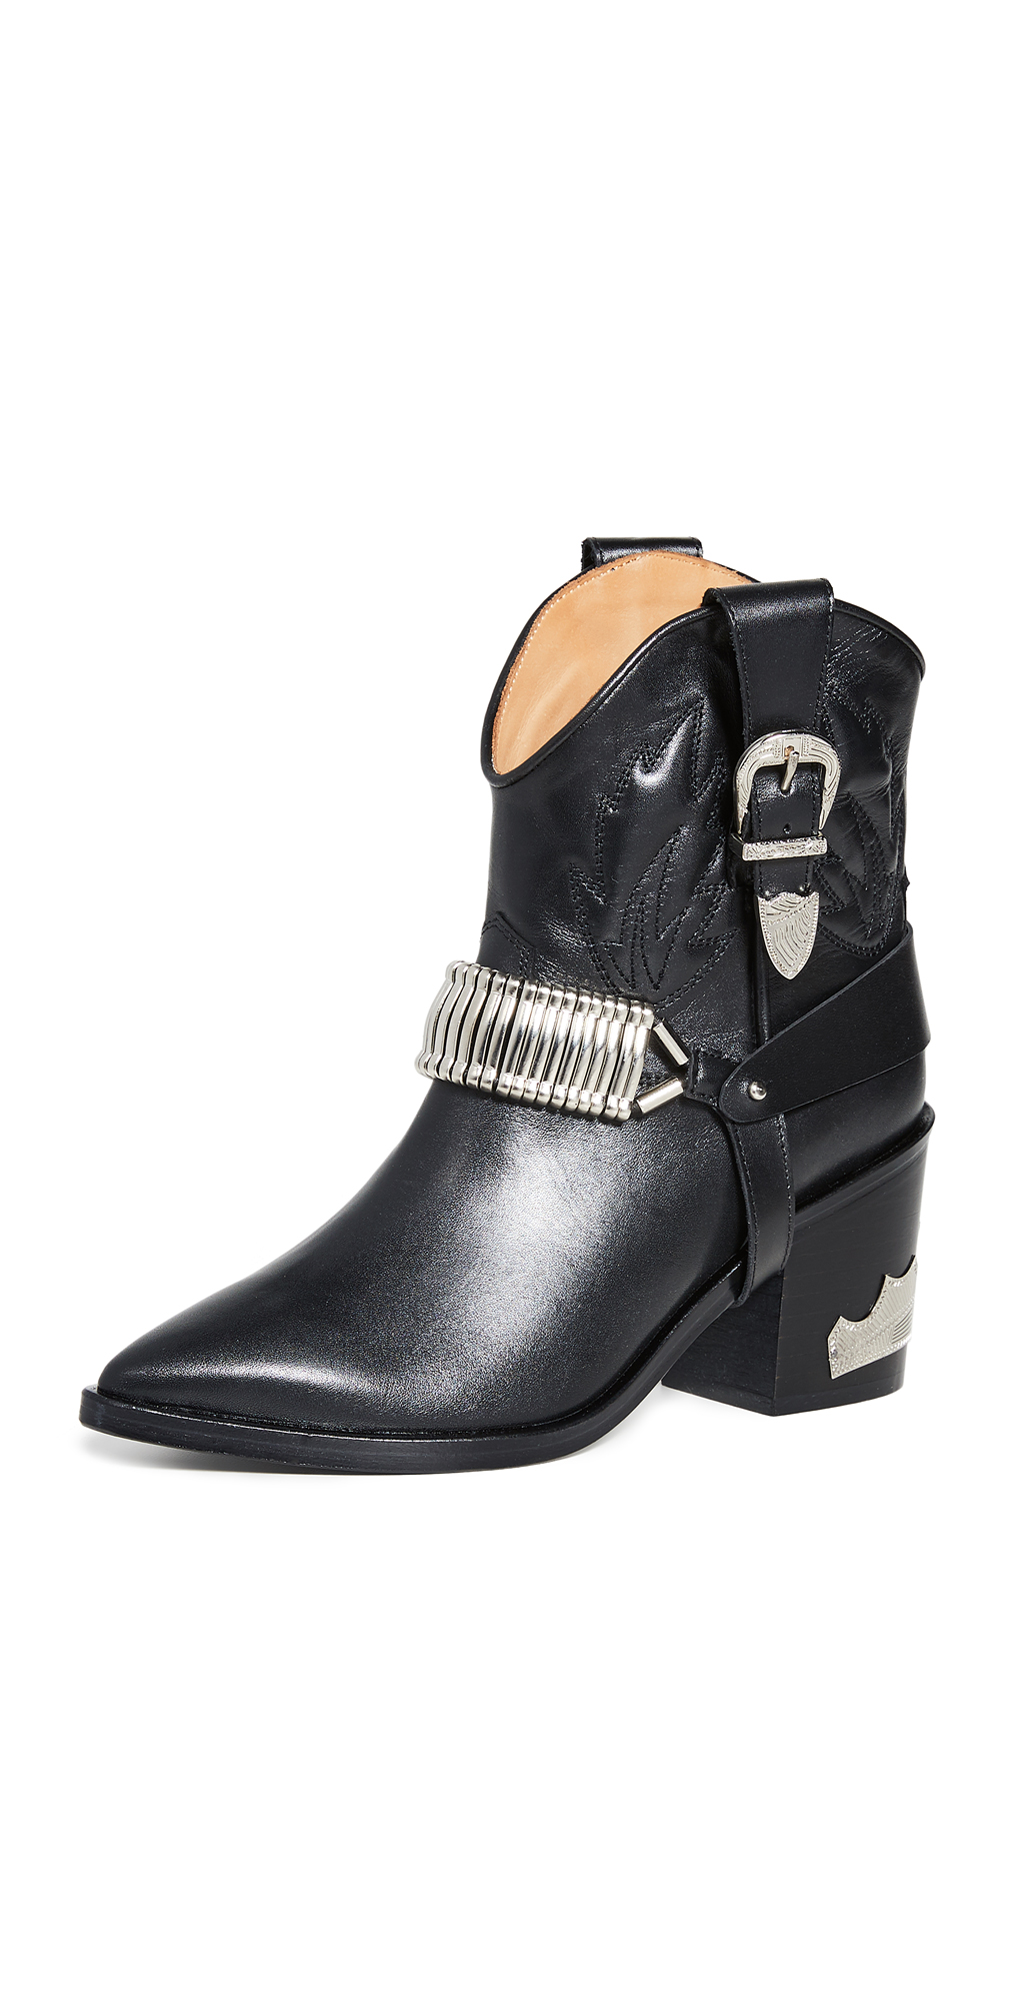 Toga Pulla Buckled Boots